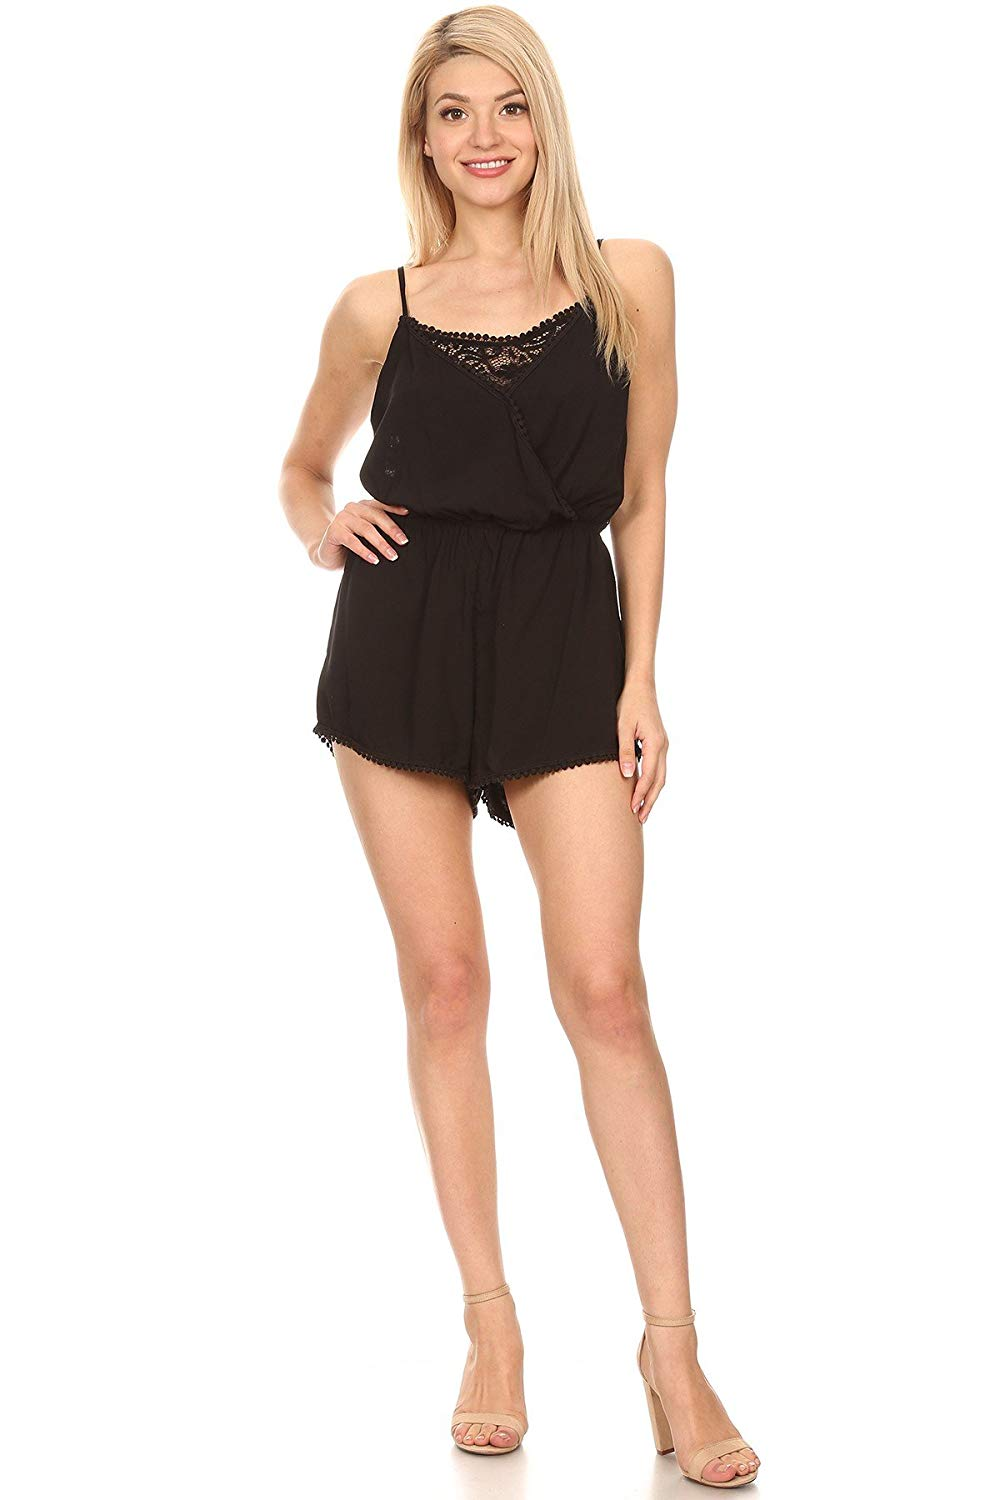 Ambiance Apparel Women's Junior's Wrapped Relaxed Round Neck Romper